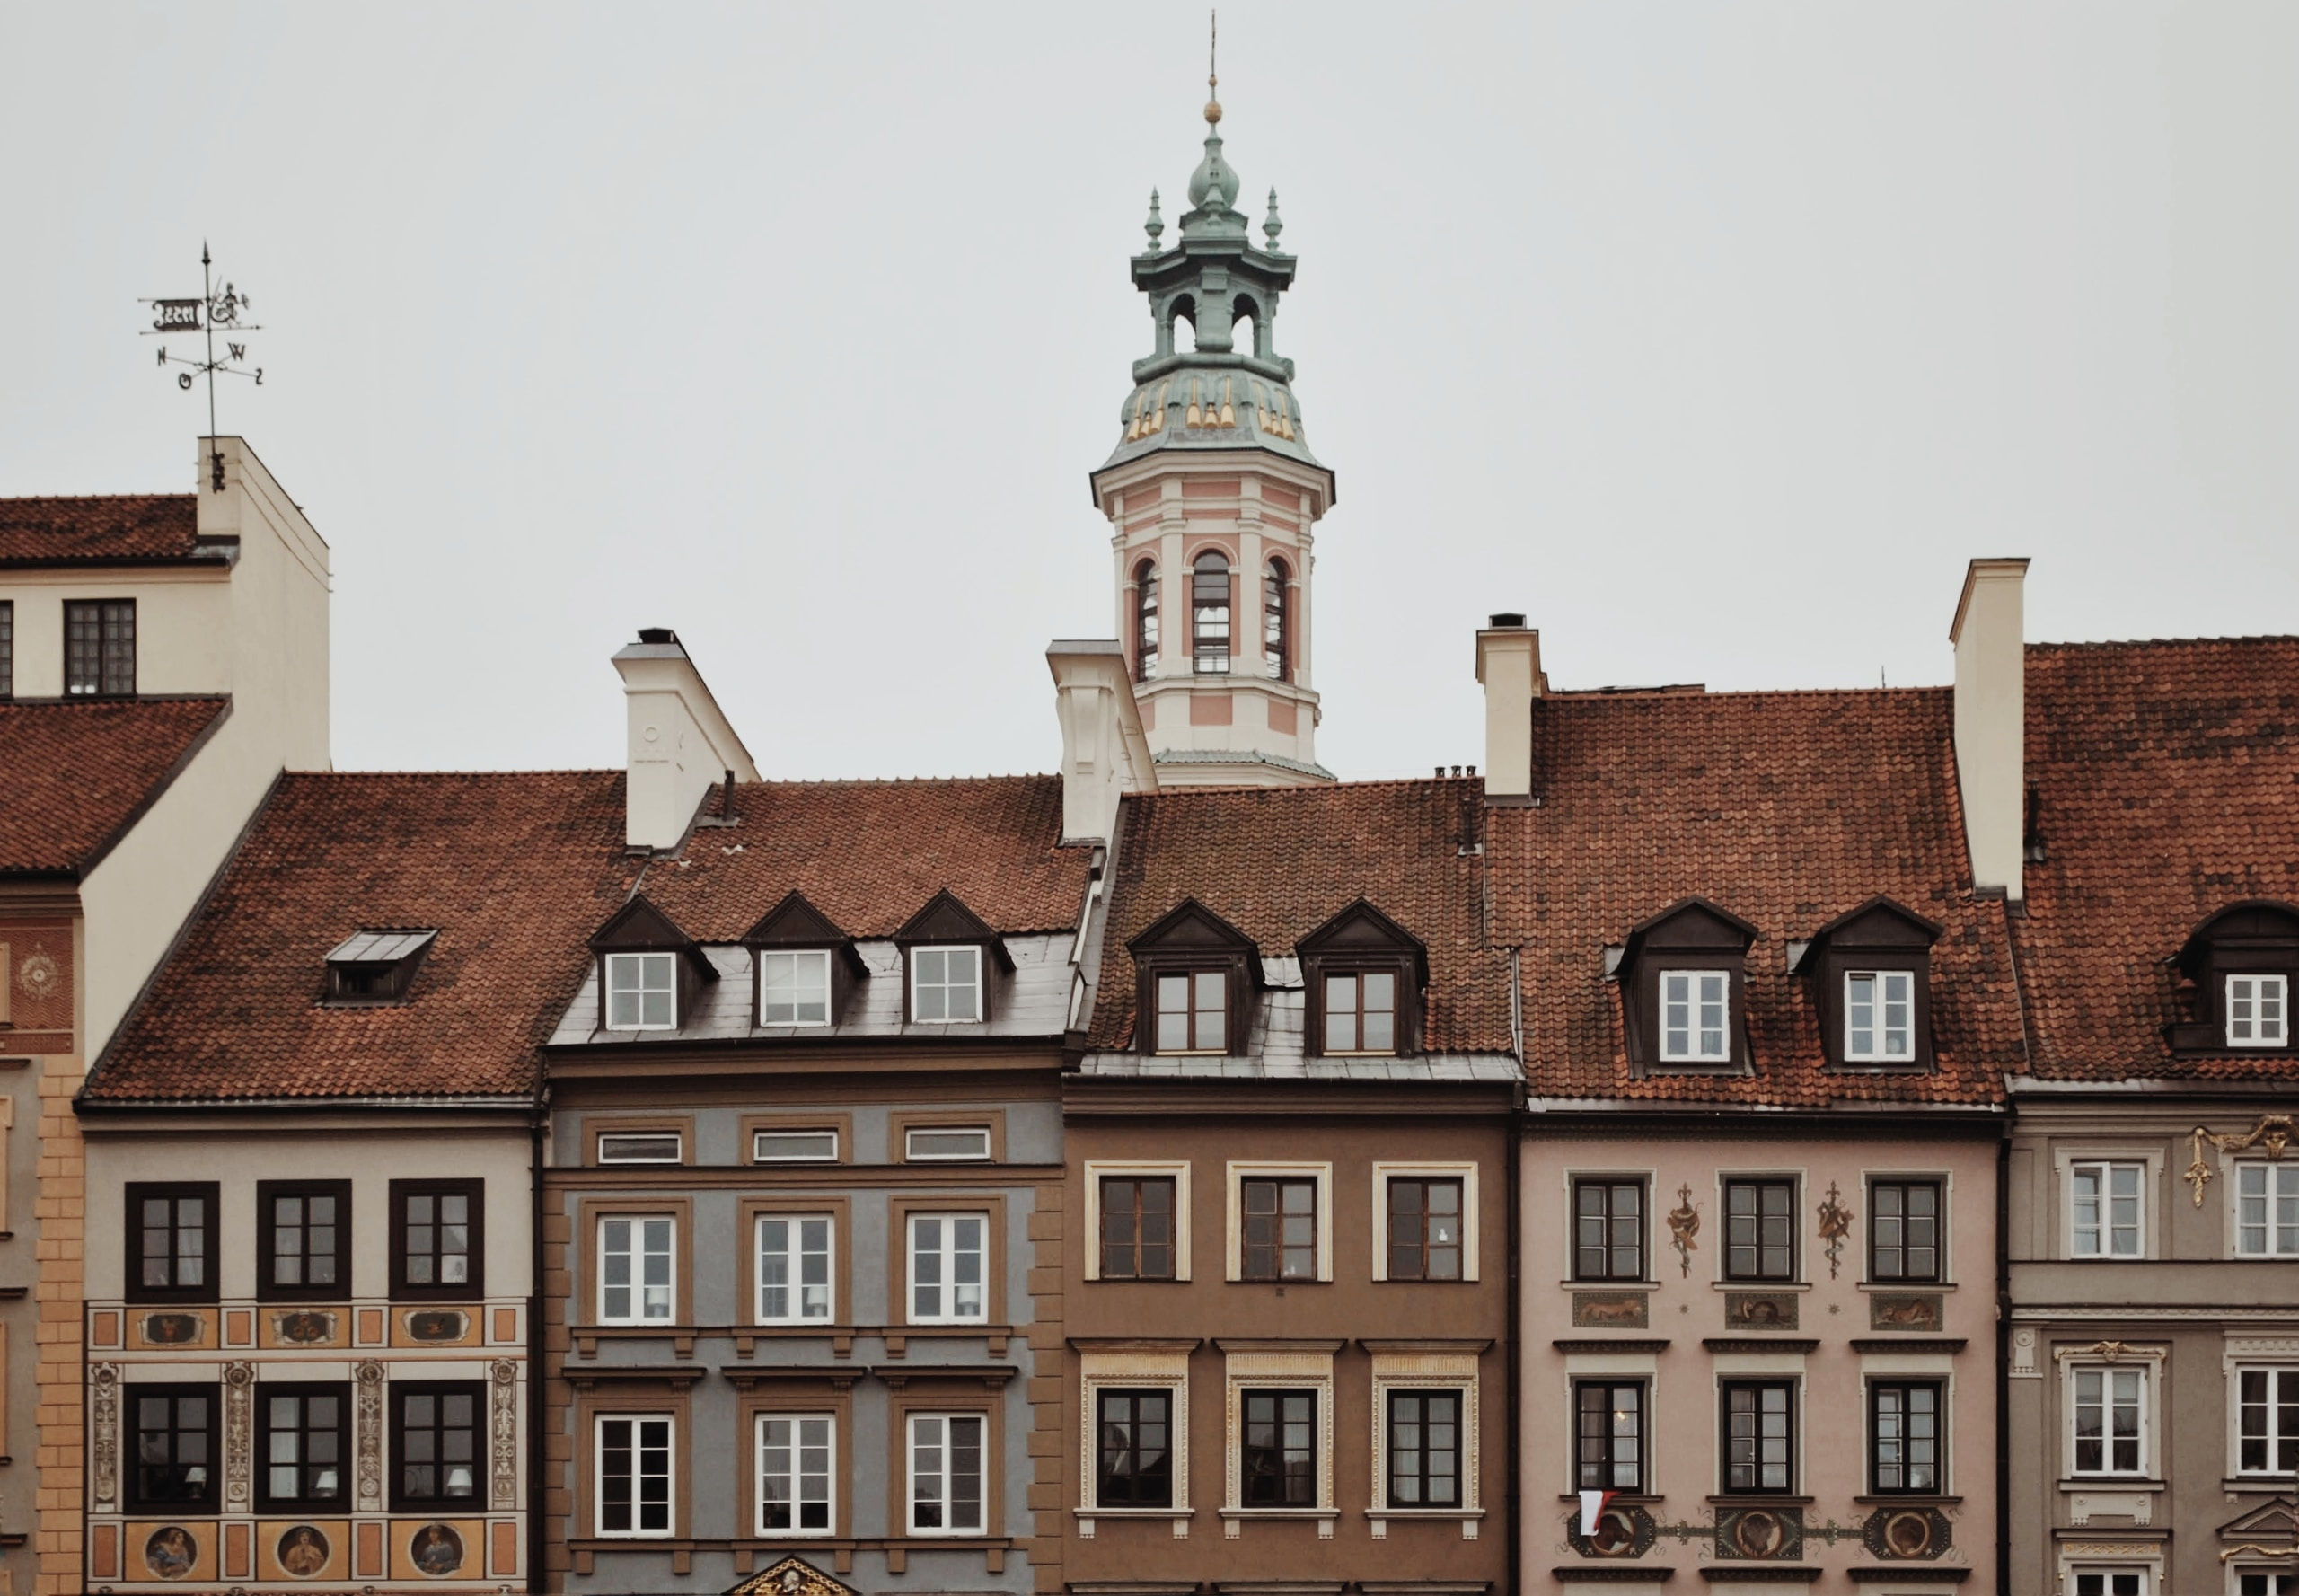 brown and white buildings under white sky